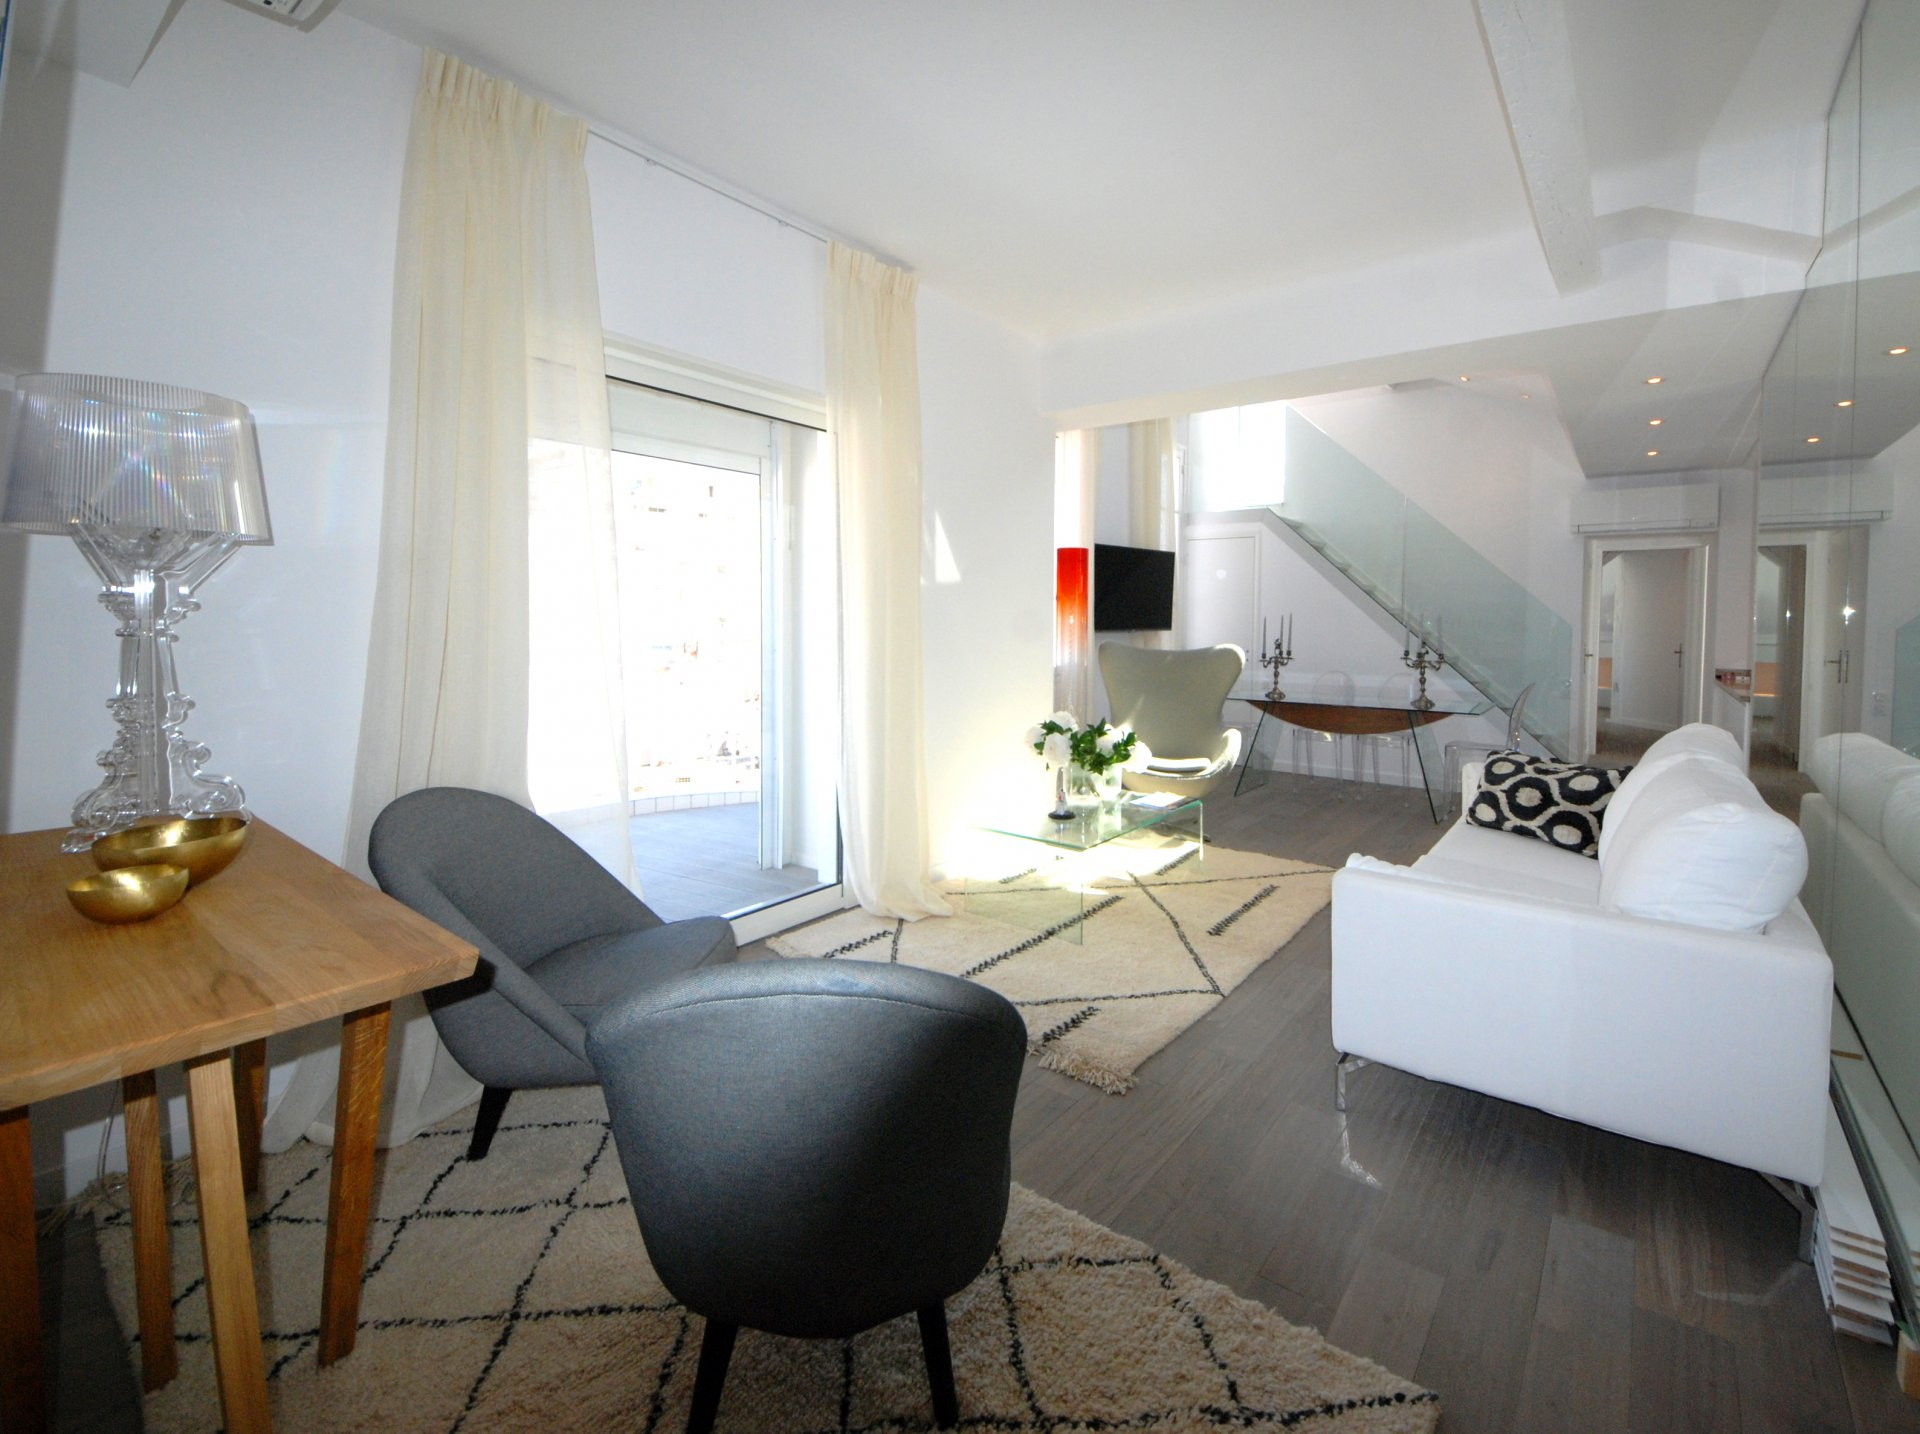 location congrès 3 bedroom centre ville Cannes